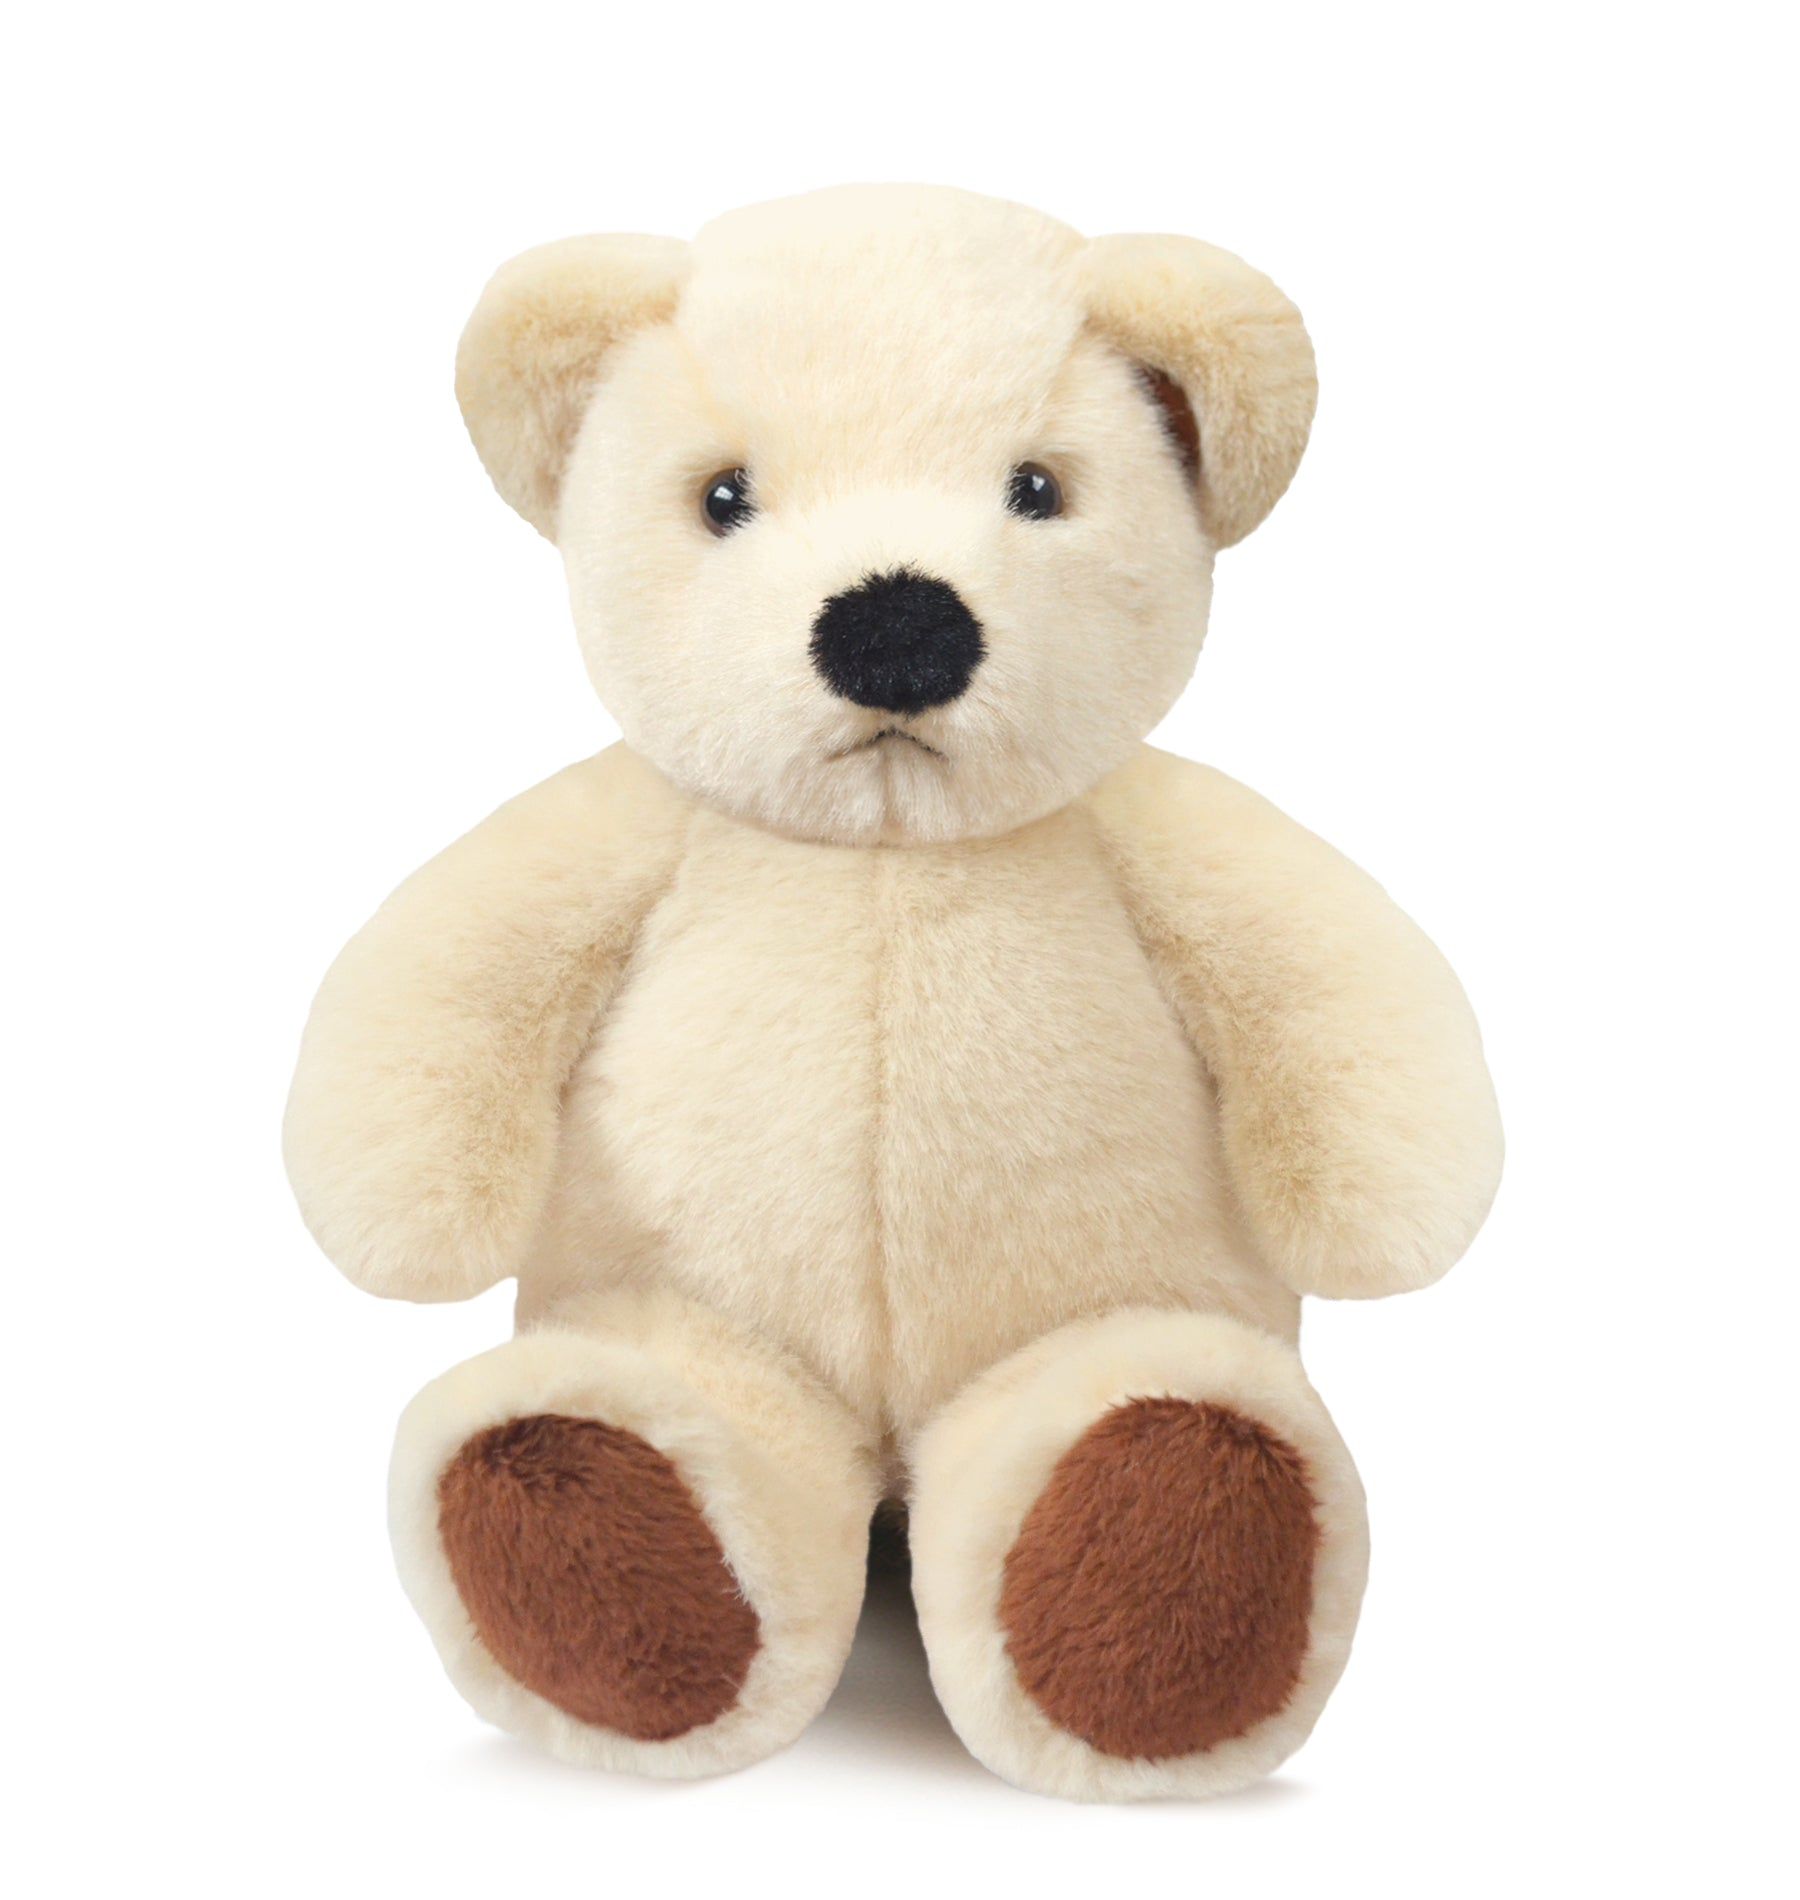 TEDDY HOUSE BONEKA TEDDY BEAR JONATHAN BEAR 12 INCHI